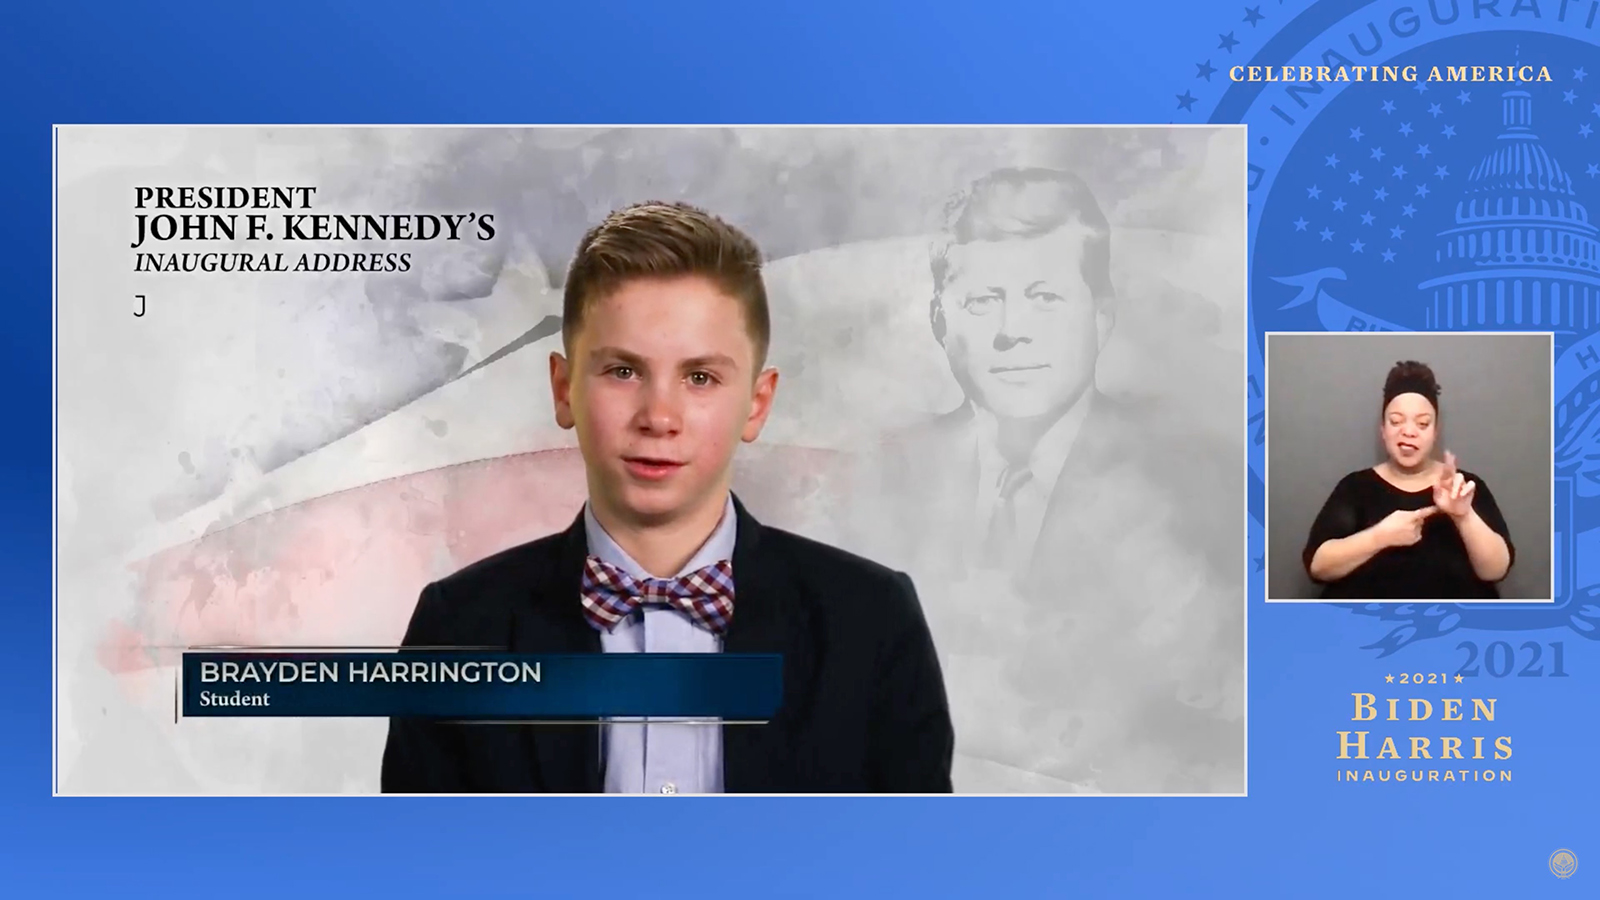 In this screengrab, Brayden Harrington speaks during the Celebrating America Primetime Special on January 20.